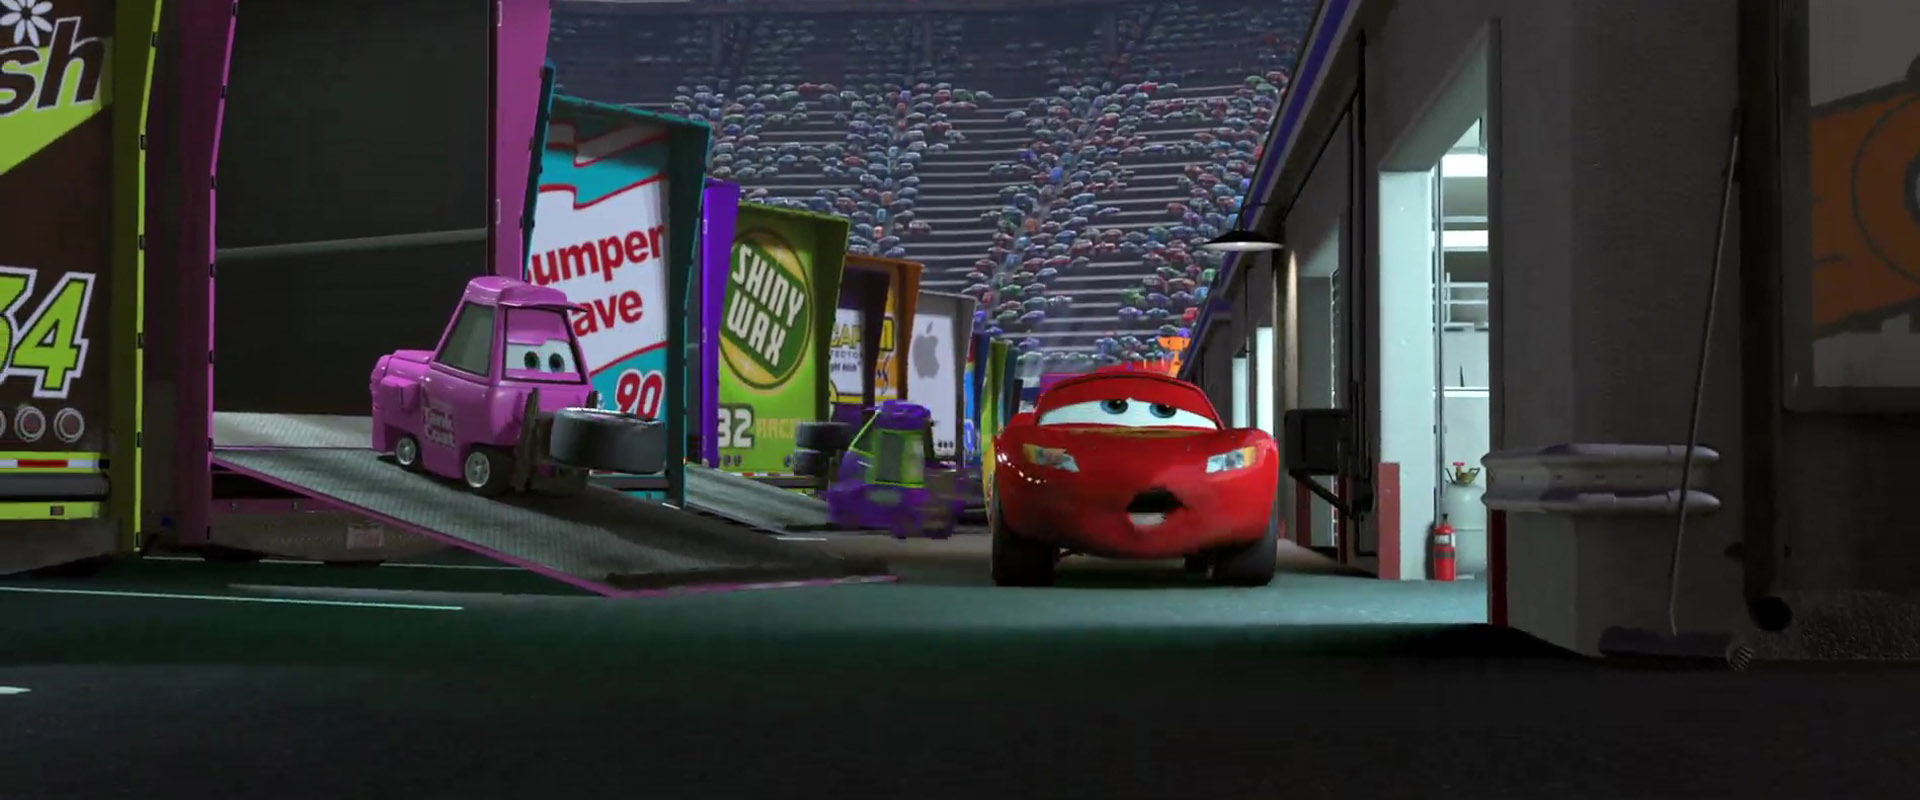 jerry drivechain personnage character pixar disney cars